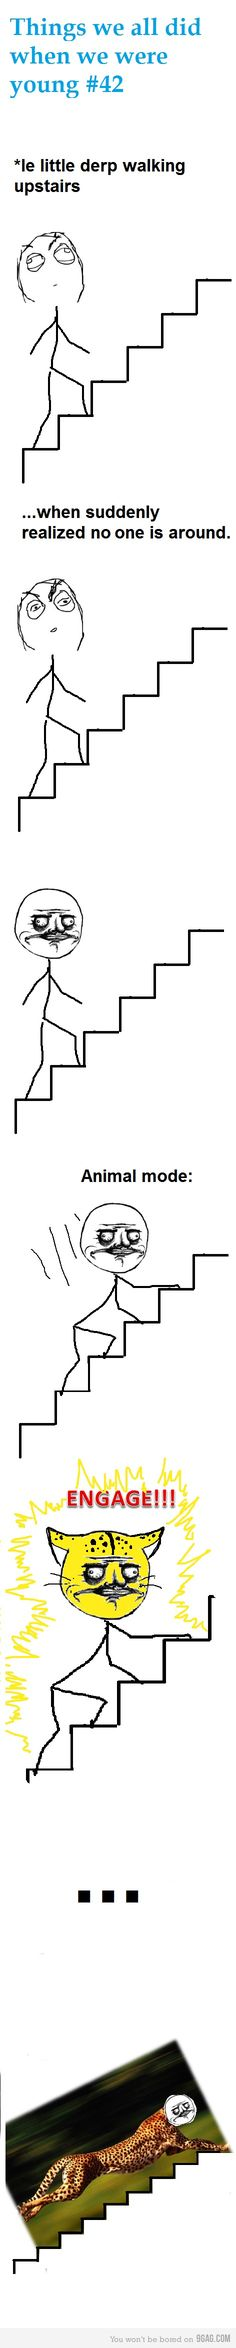 totally did this so many times and still do it today(: